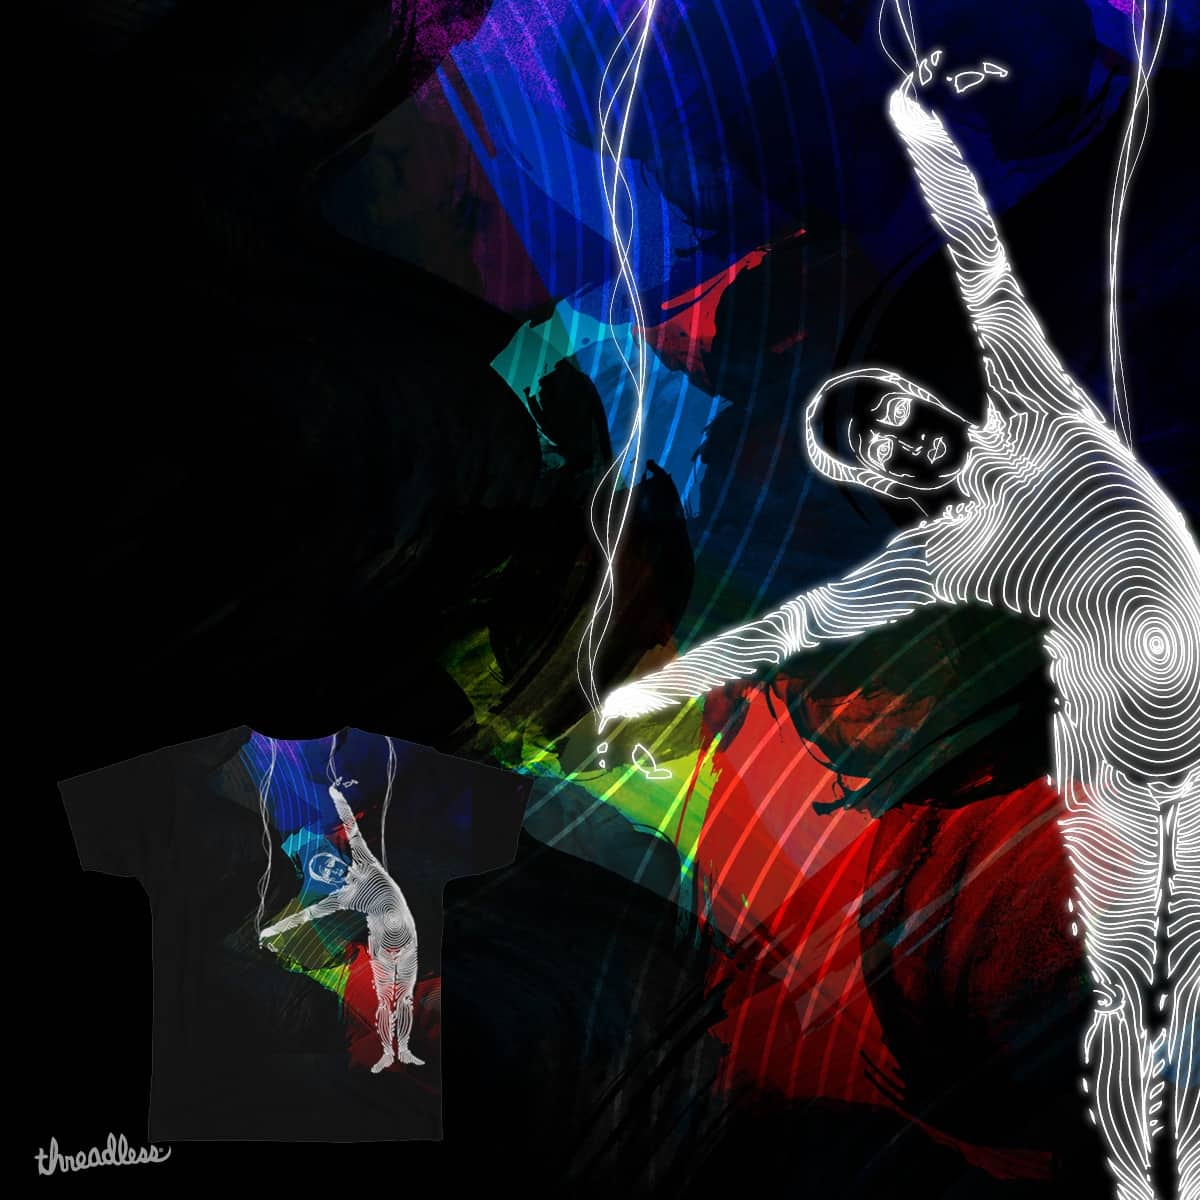 The Acrobat - Circus of Imagination by rohan.jha.792 on Threadless